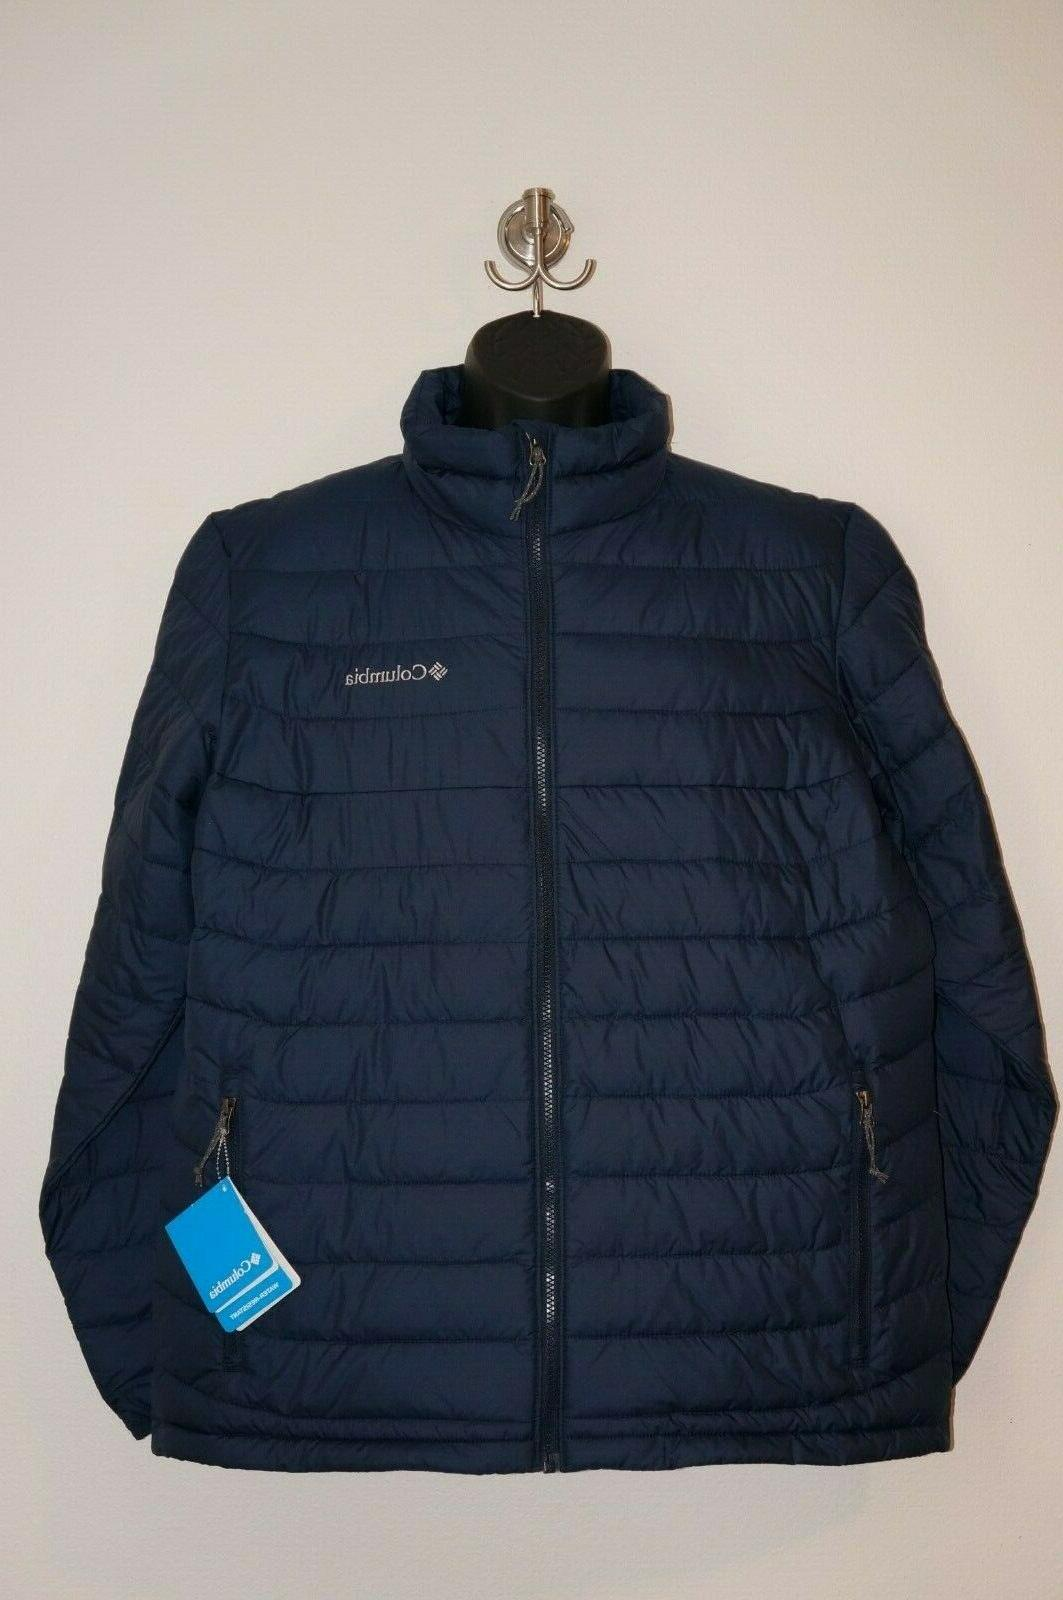 nwt oyanta trail jacket insulated therma coil